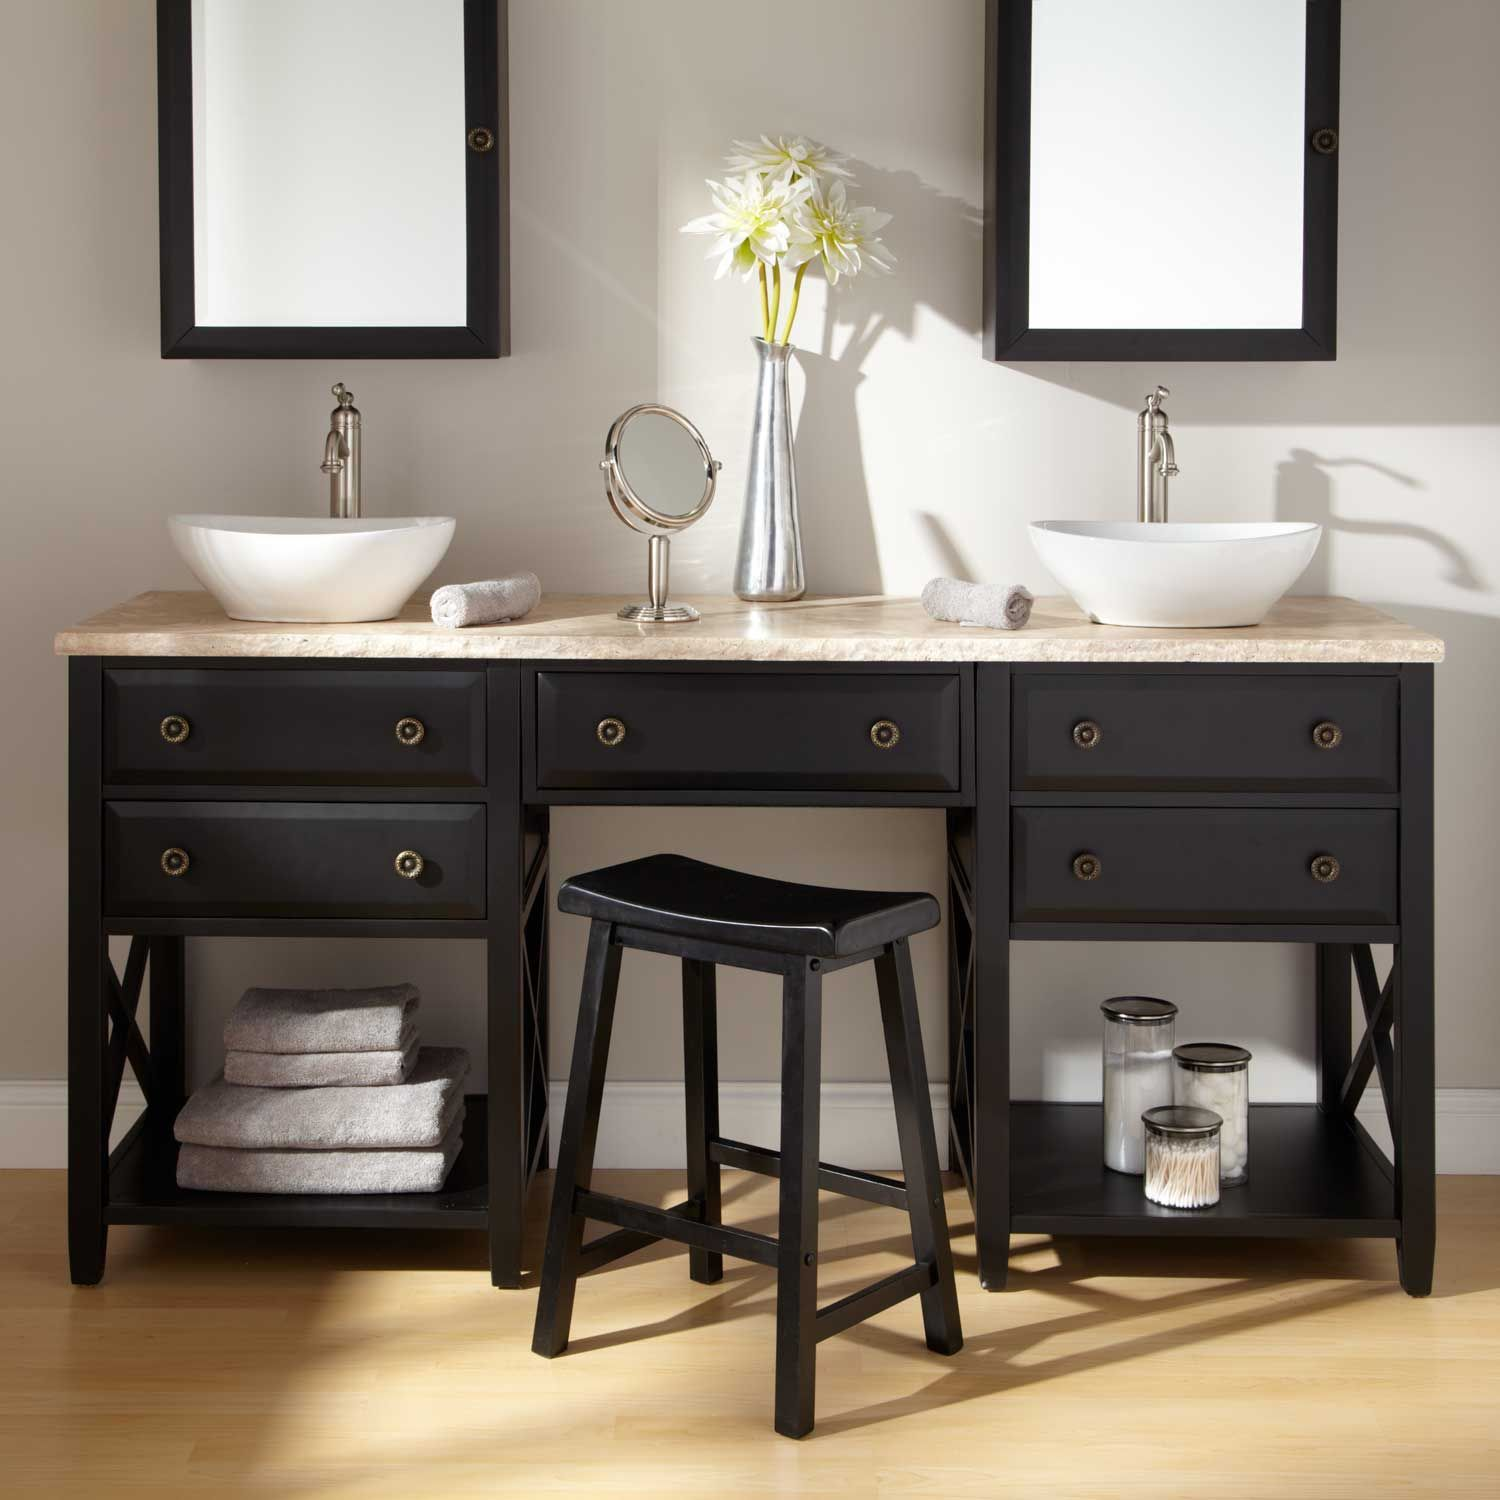 stylish double sink vanity with black wooden base open storage stylish double sink vanity with black wooden base open storage particular bathroom ideas